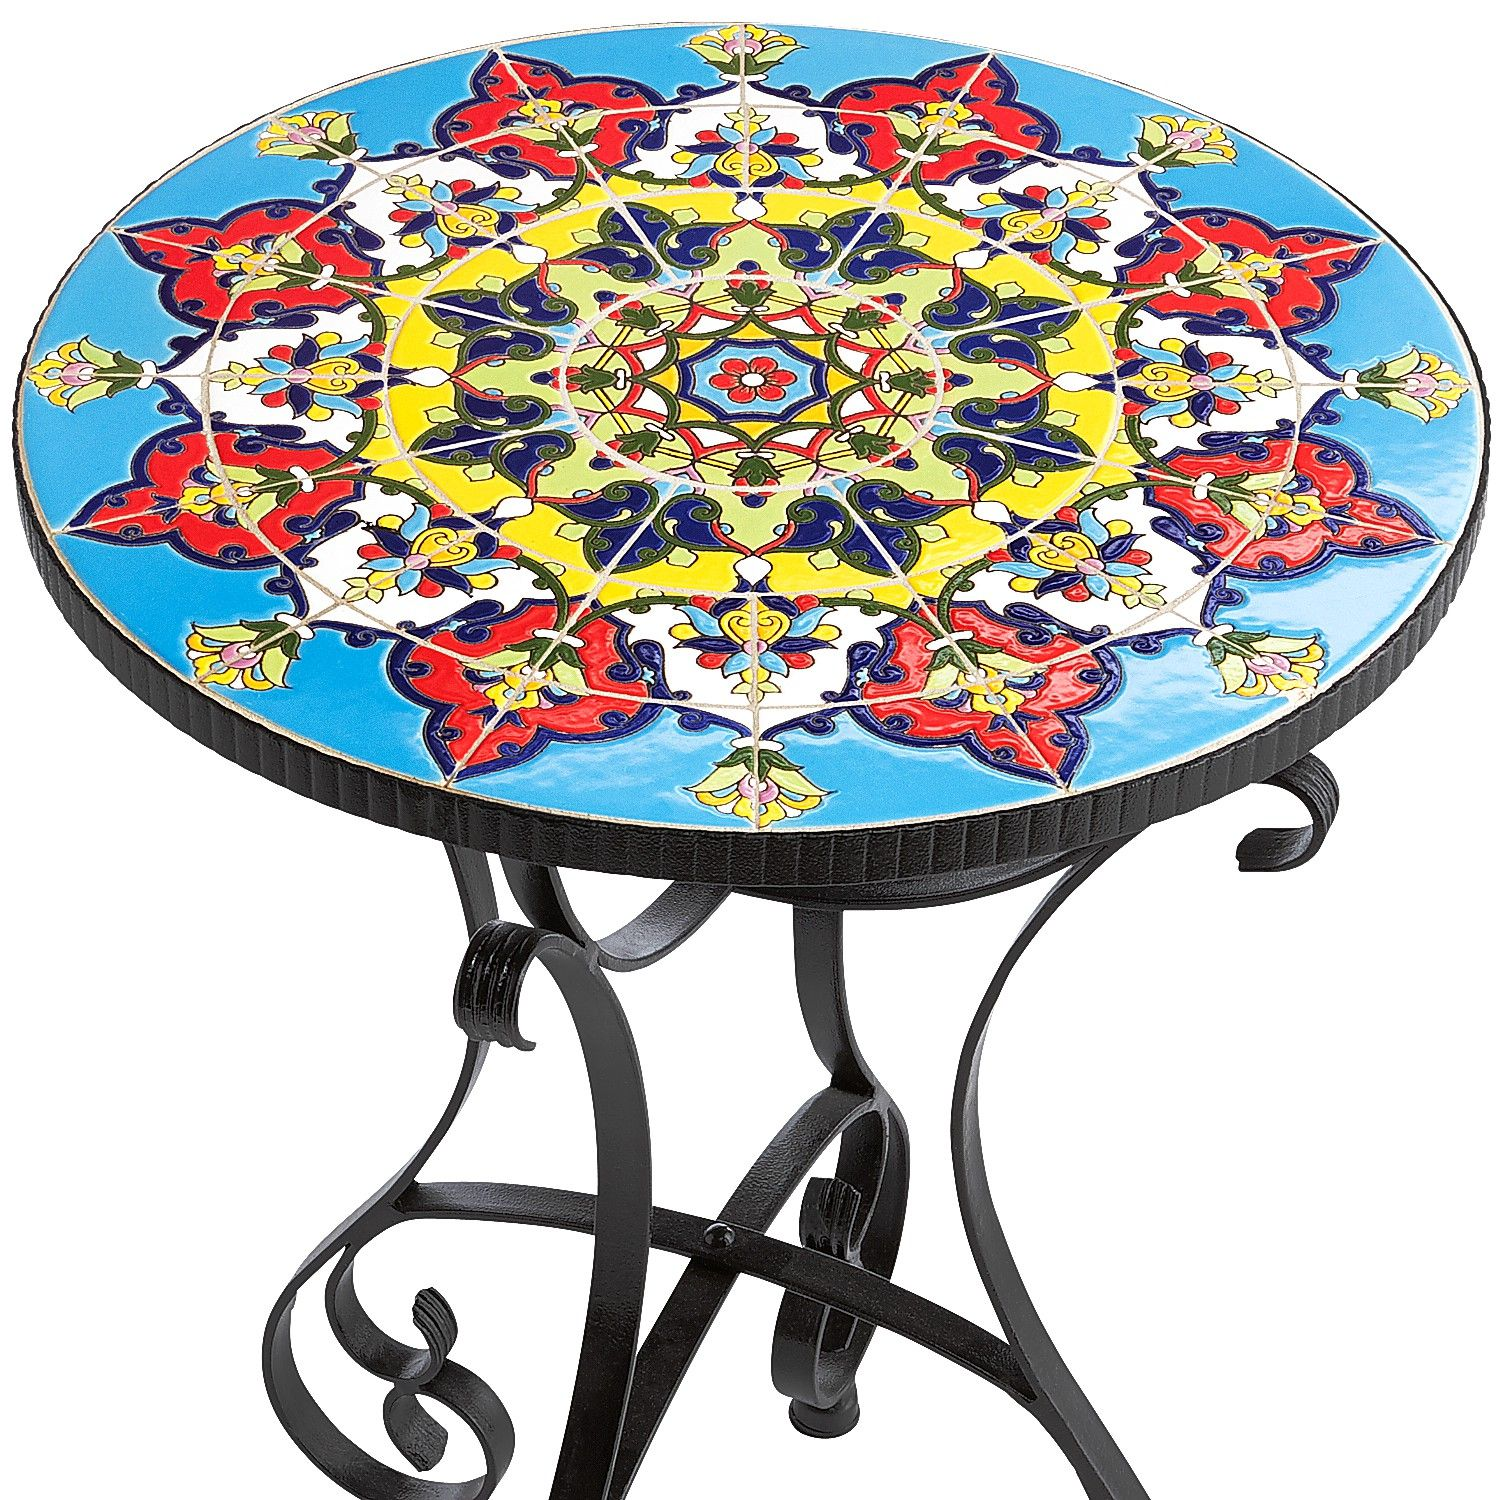 mosaic accent table outdoor laeti fanette round side zaltana emilio coffee tables room essentials lamp target black dresser types furniture white wicker long monarch ceramic door